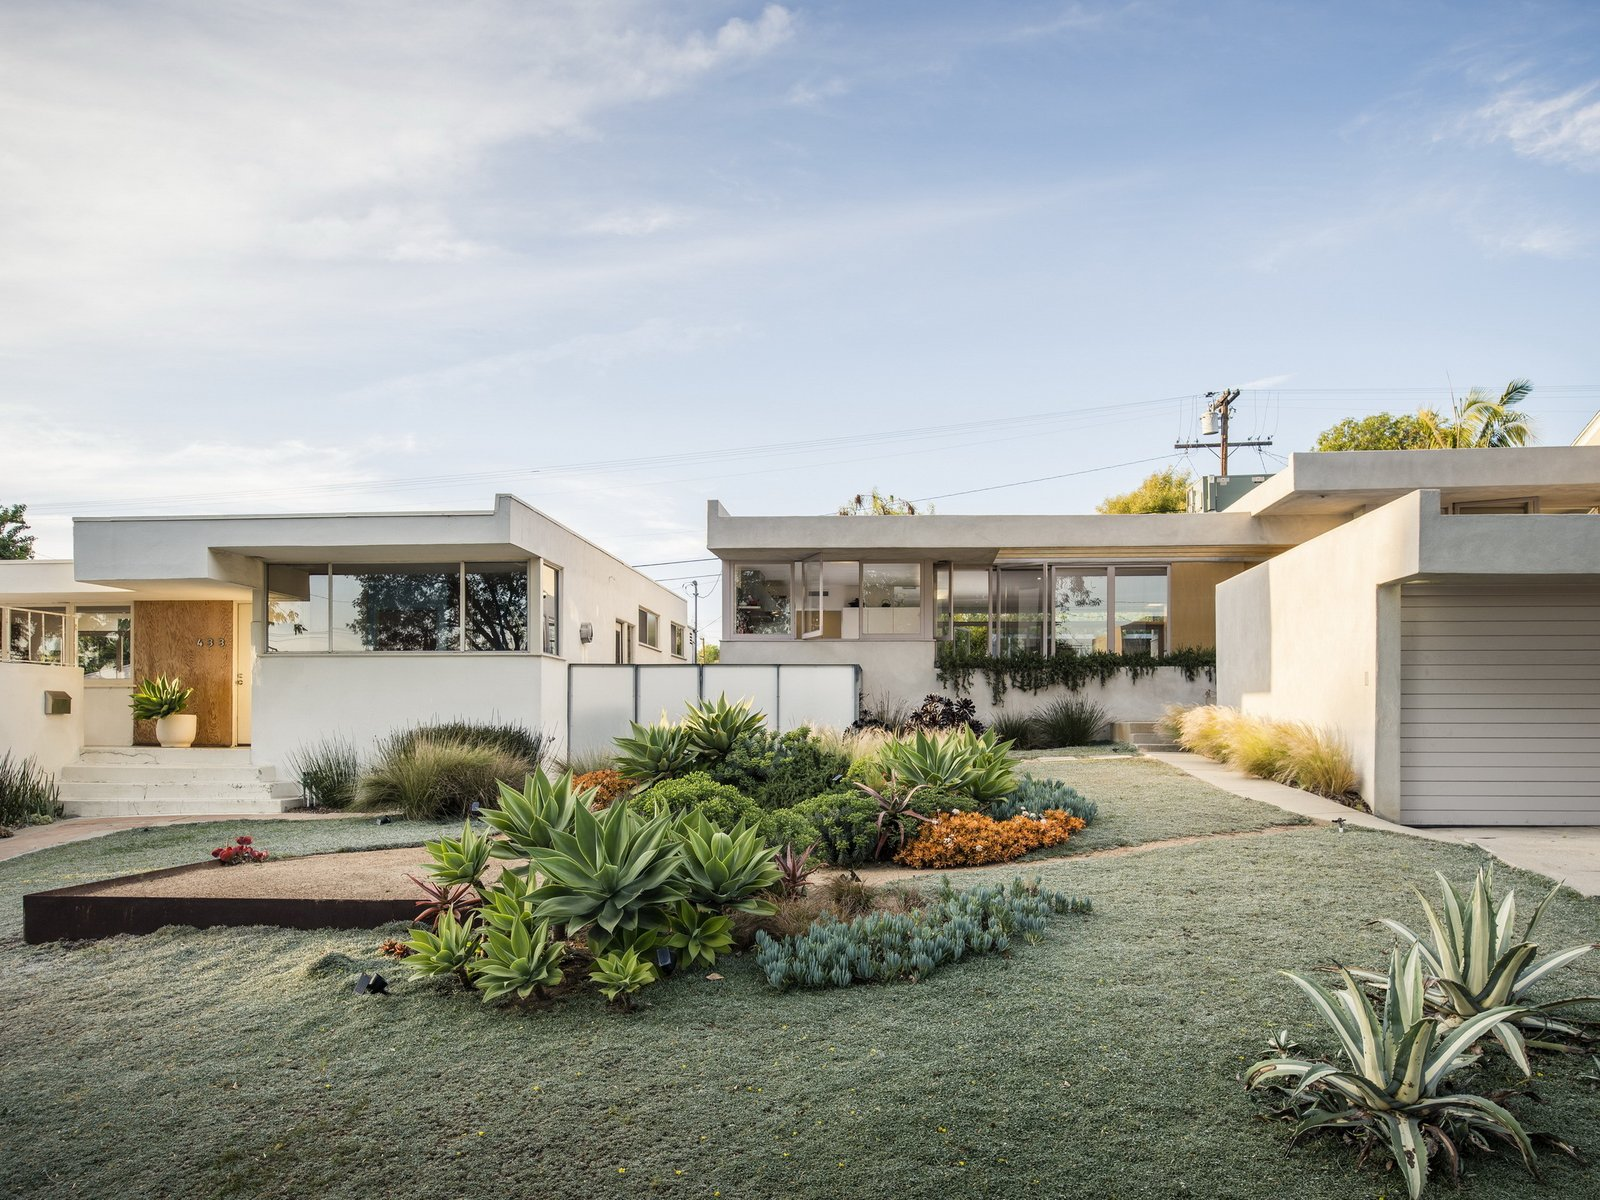 Three Rudolph Schindler restorations by Steven Ehrlich, Kali Nikitas, and Richard Shelton: A trio of Schindler houses brings three Los Angeles families together.  Photo 2 of 3 in Take a Sneak Peek at Dwell's July/August 2020 Issue